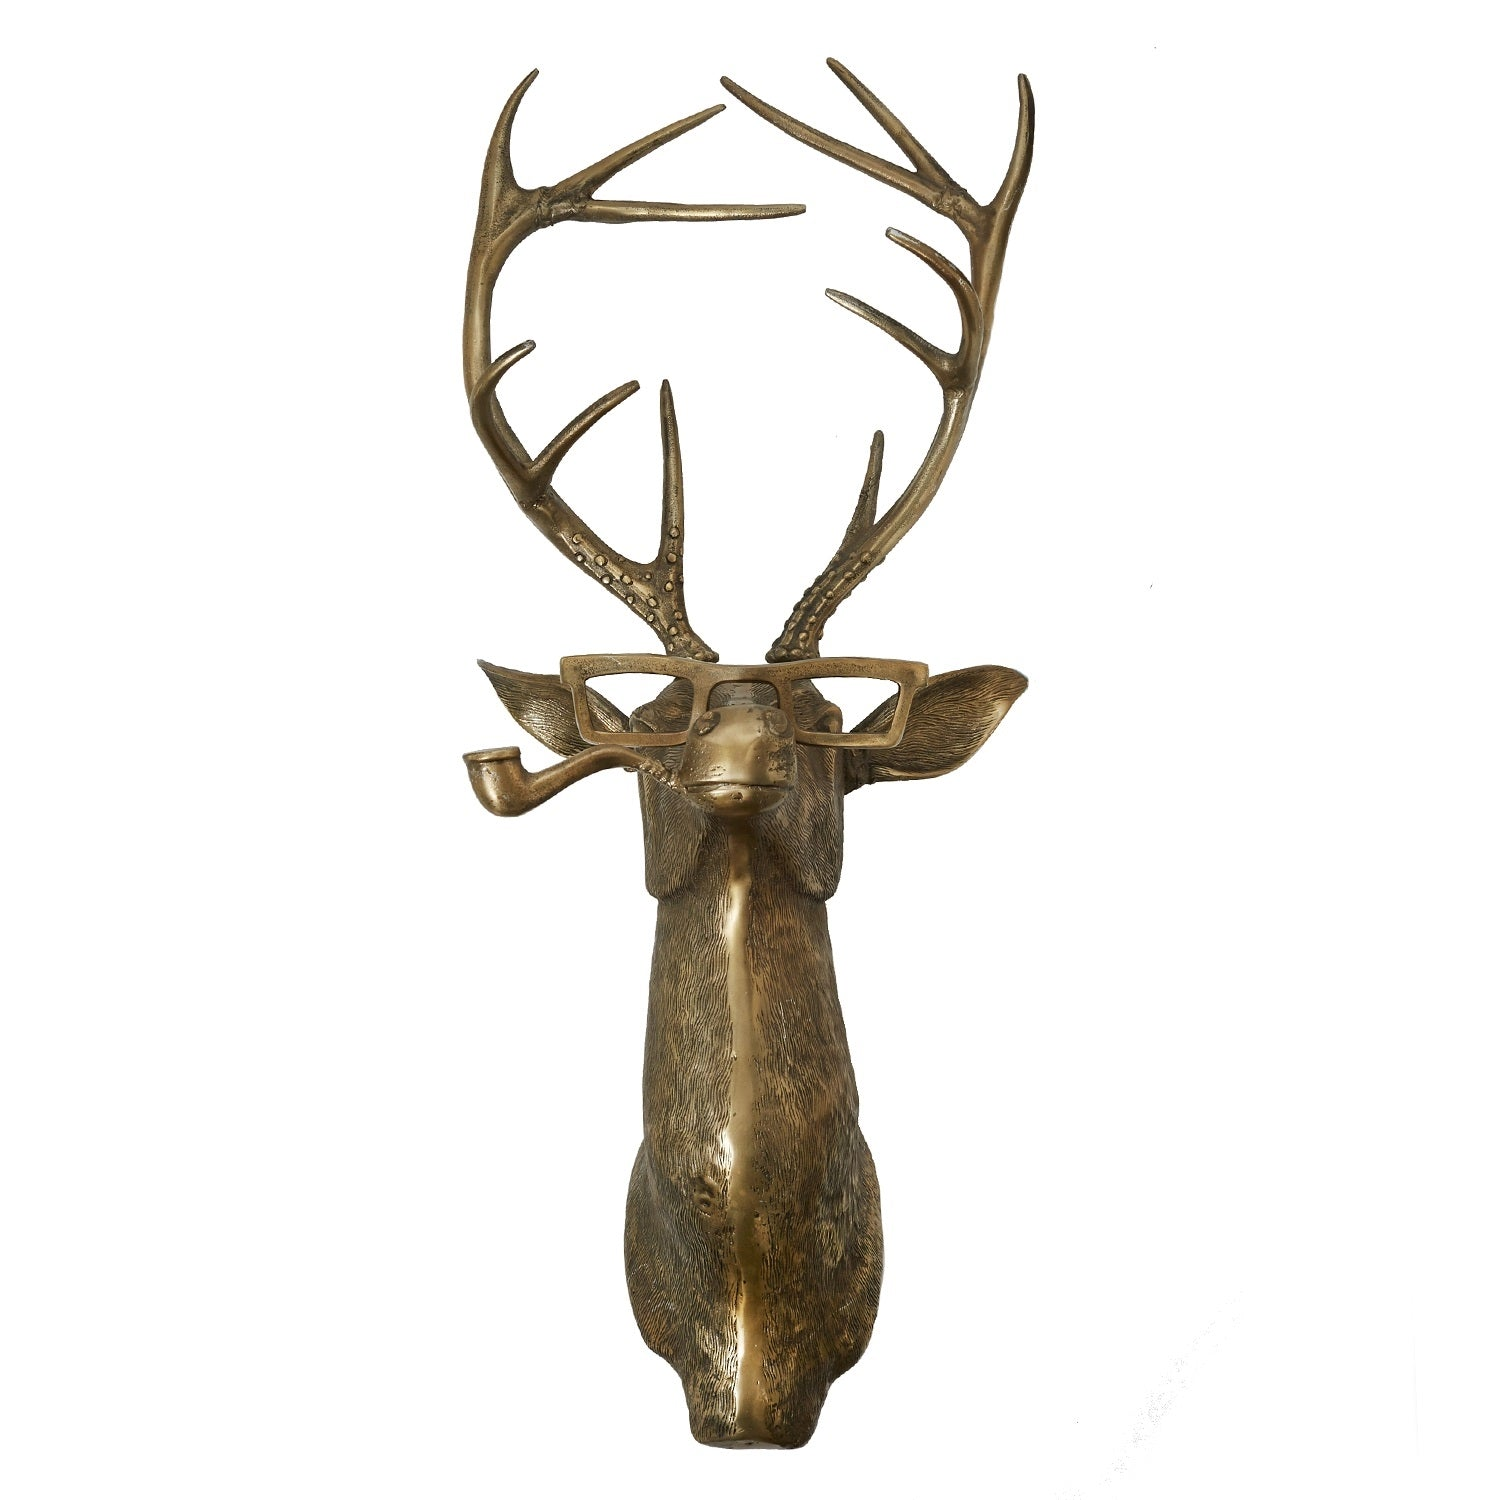 metal stag head in a brass finish smoking a pipe and wearing glasses